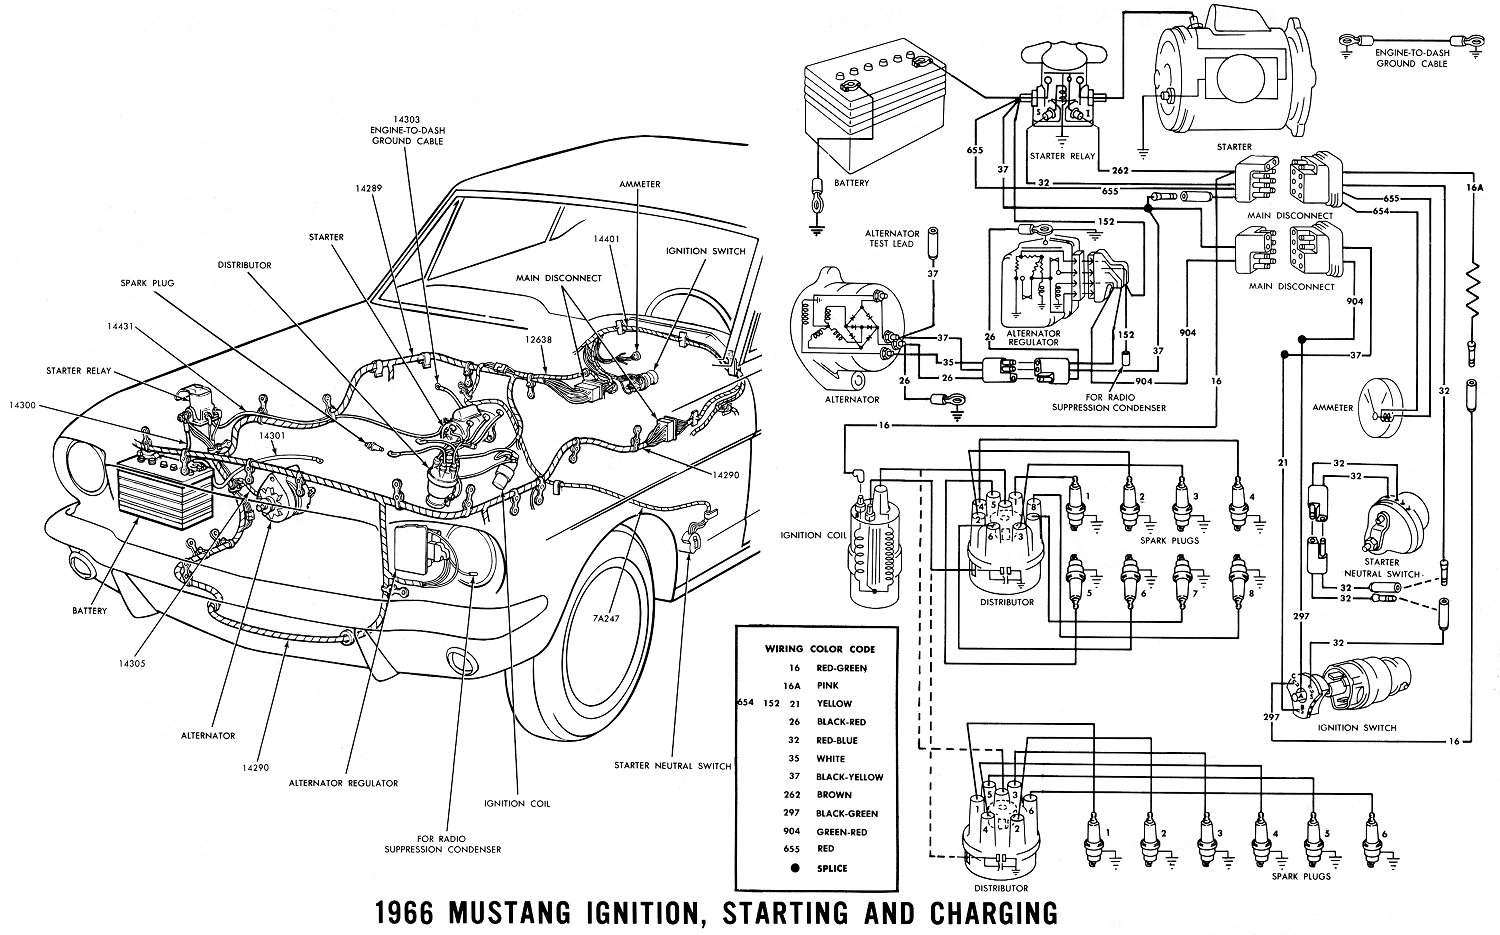 66ignit 1966 mustang wiring diagrams average joe restoration ignition wiring diagram at readyjetset.co